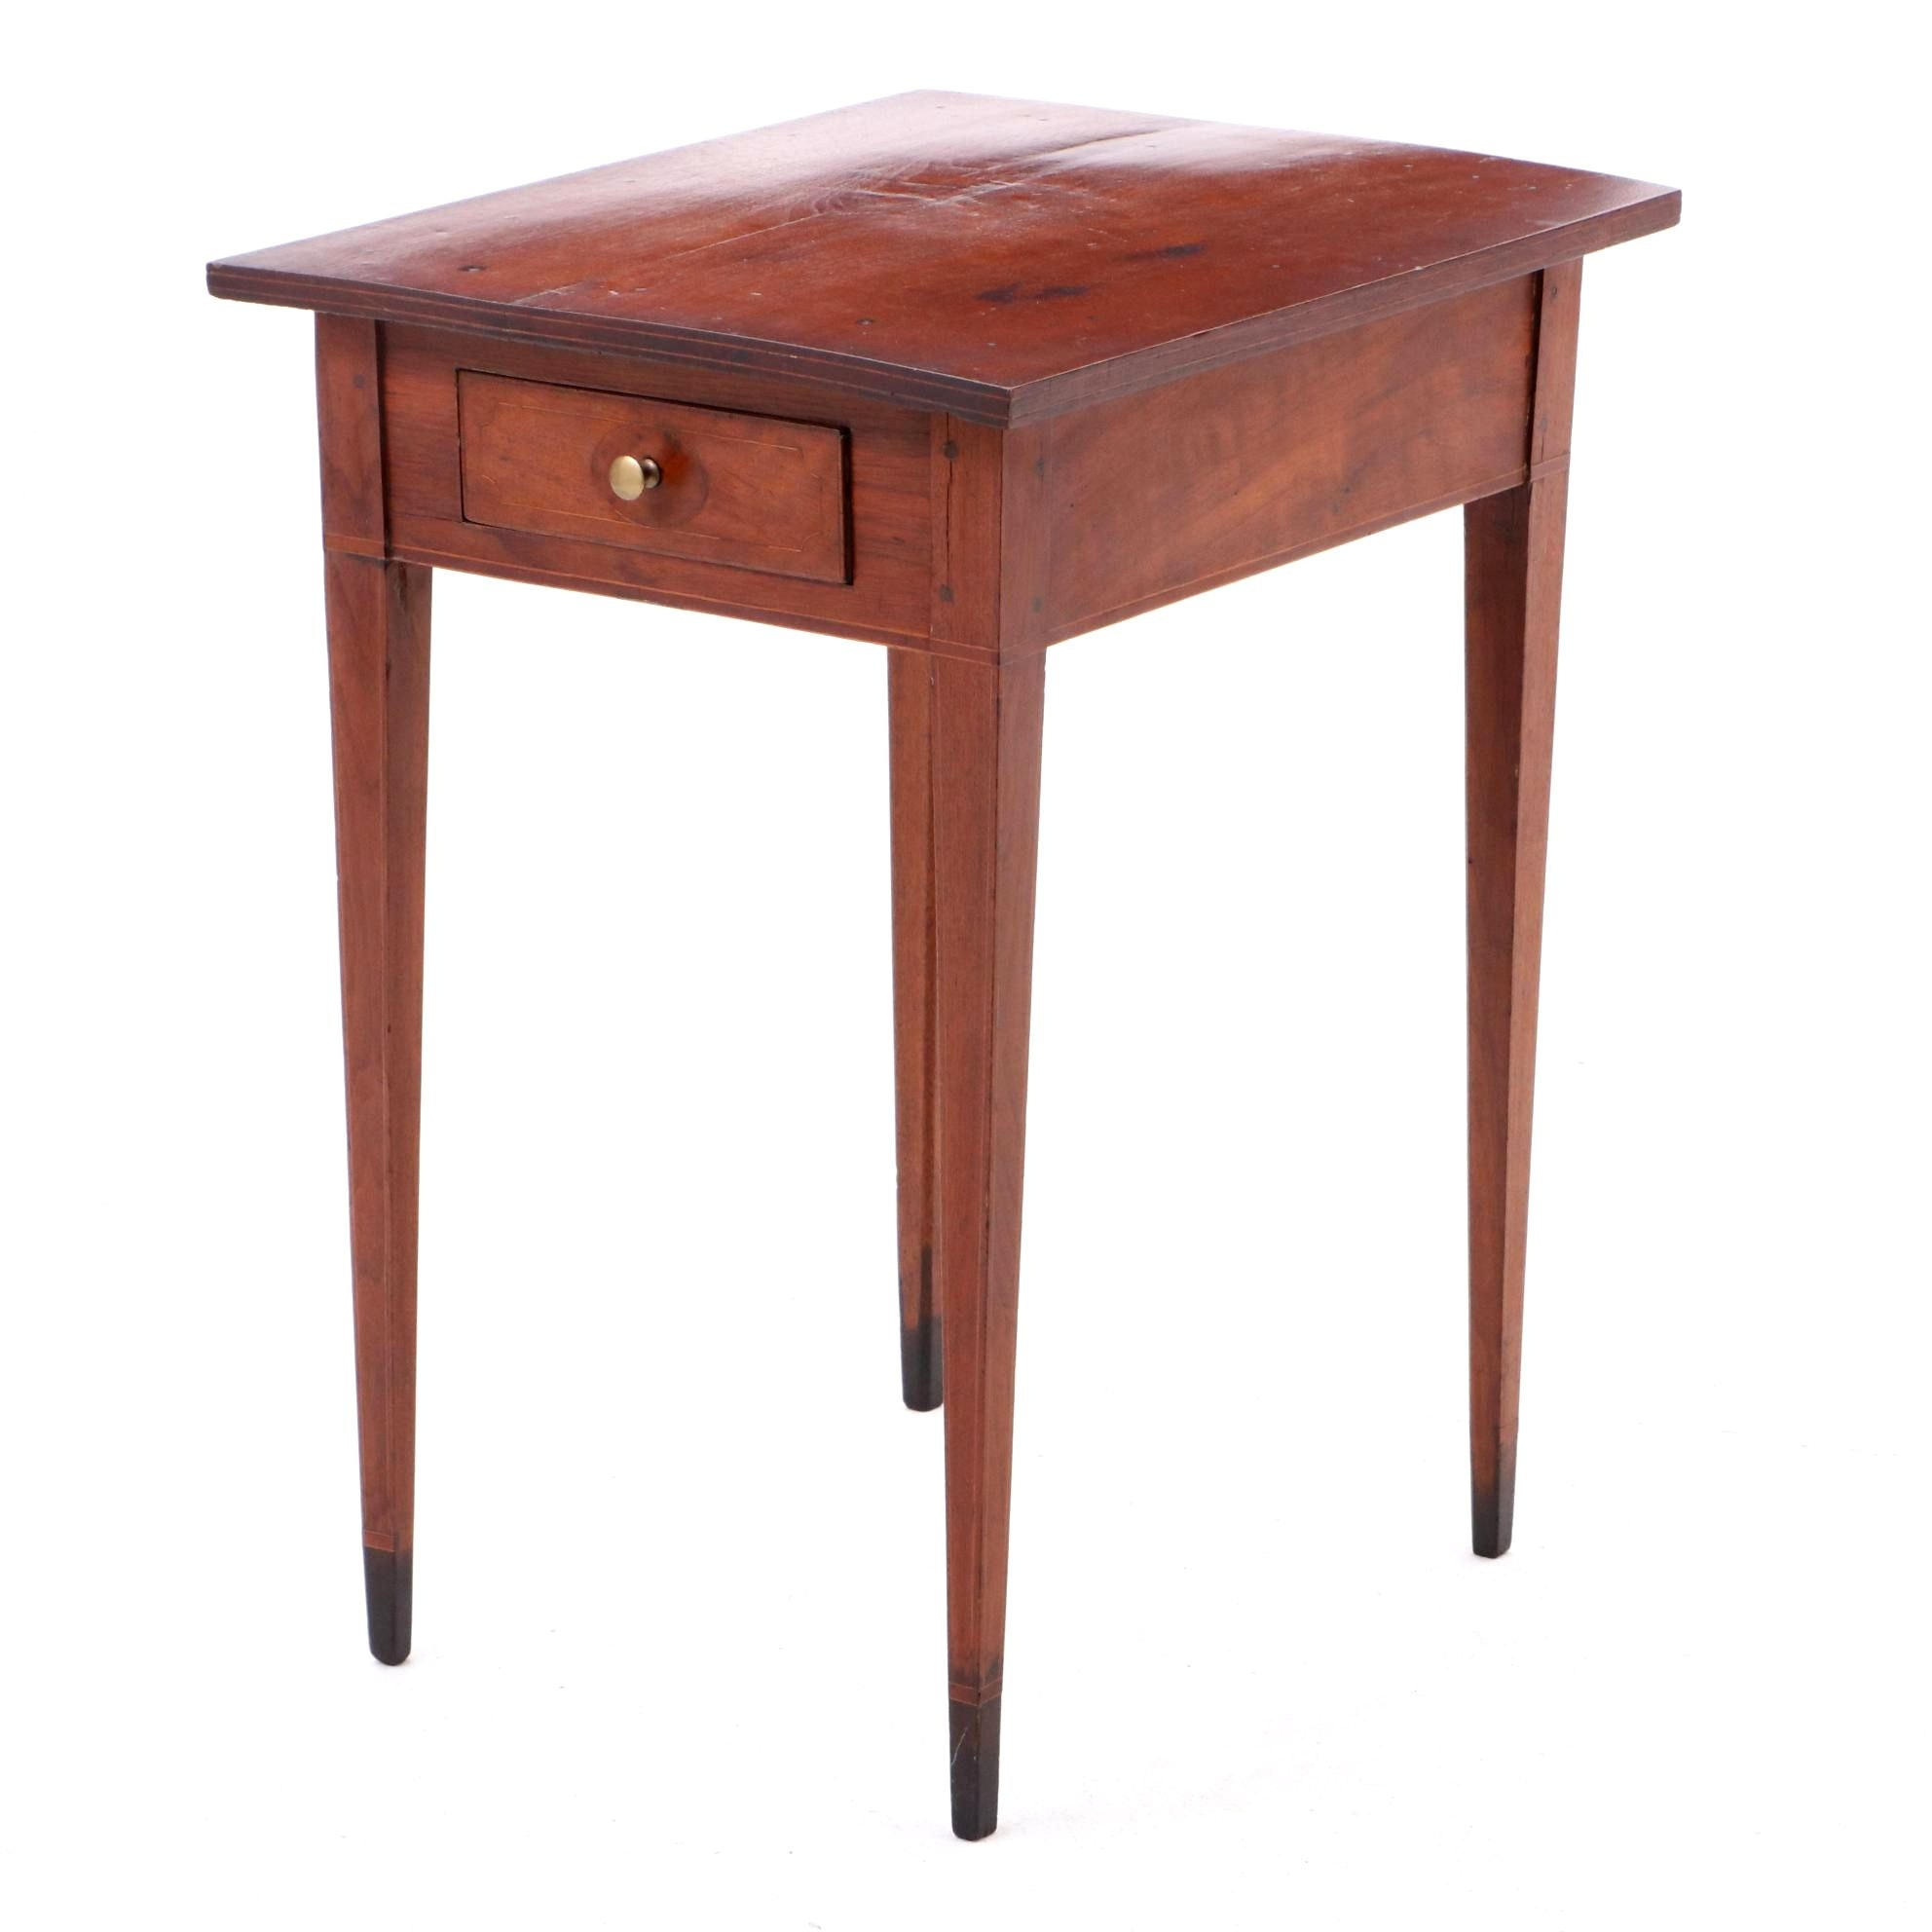 Hepplewhite Walnut Side Table with String Inlay, circa 1820